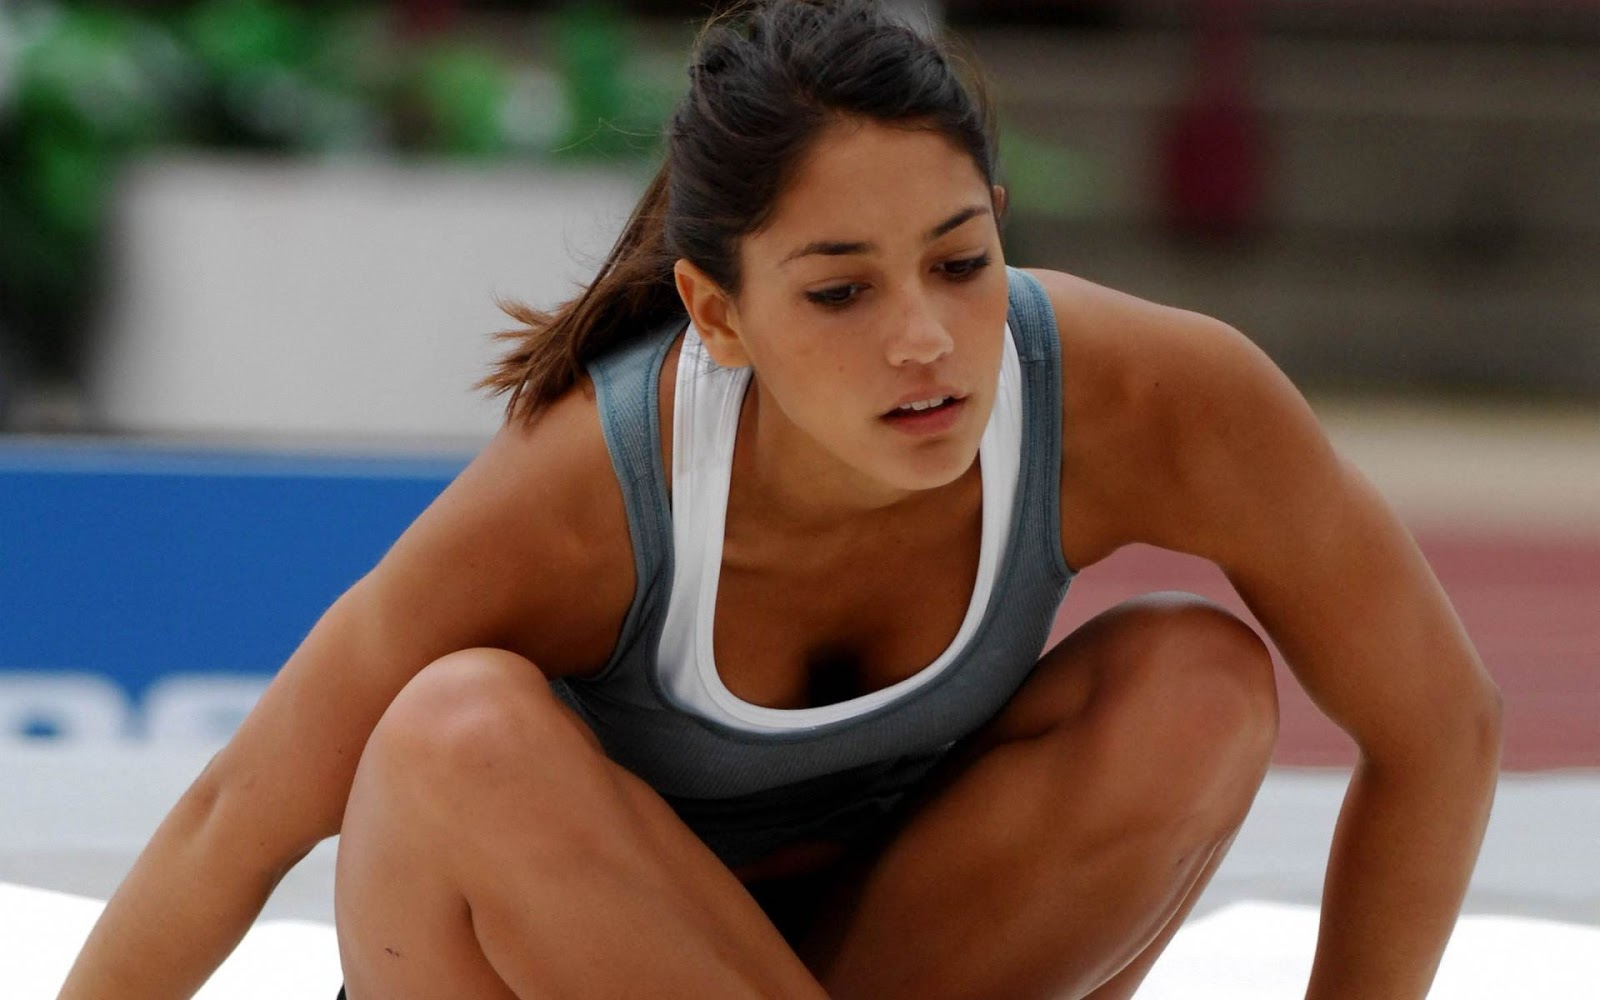 allison stokke wallpaper xpx - photo #5